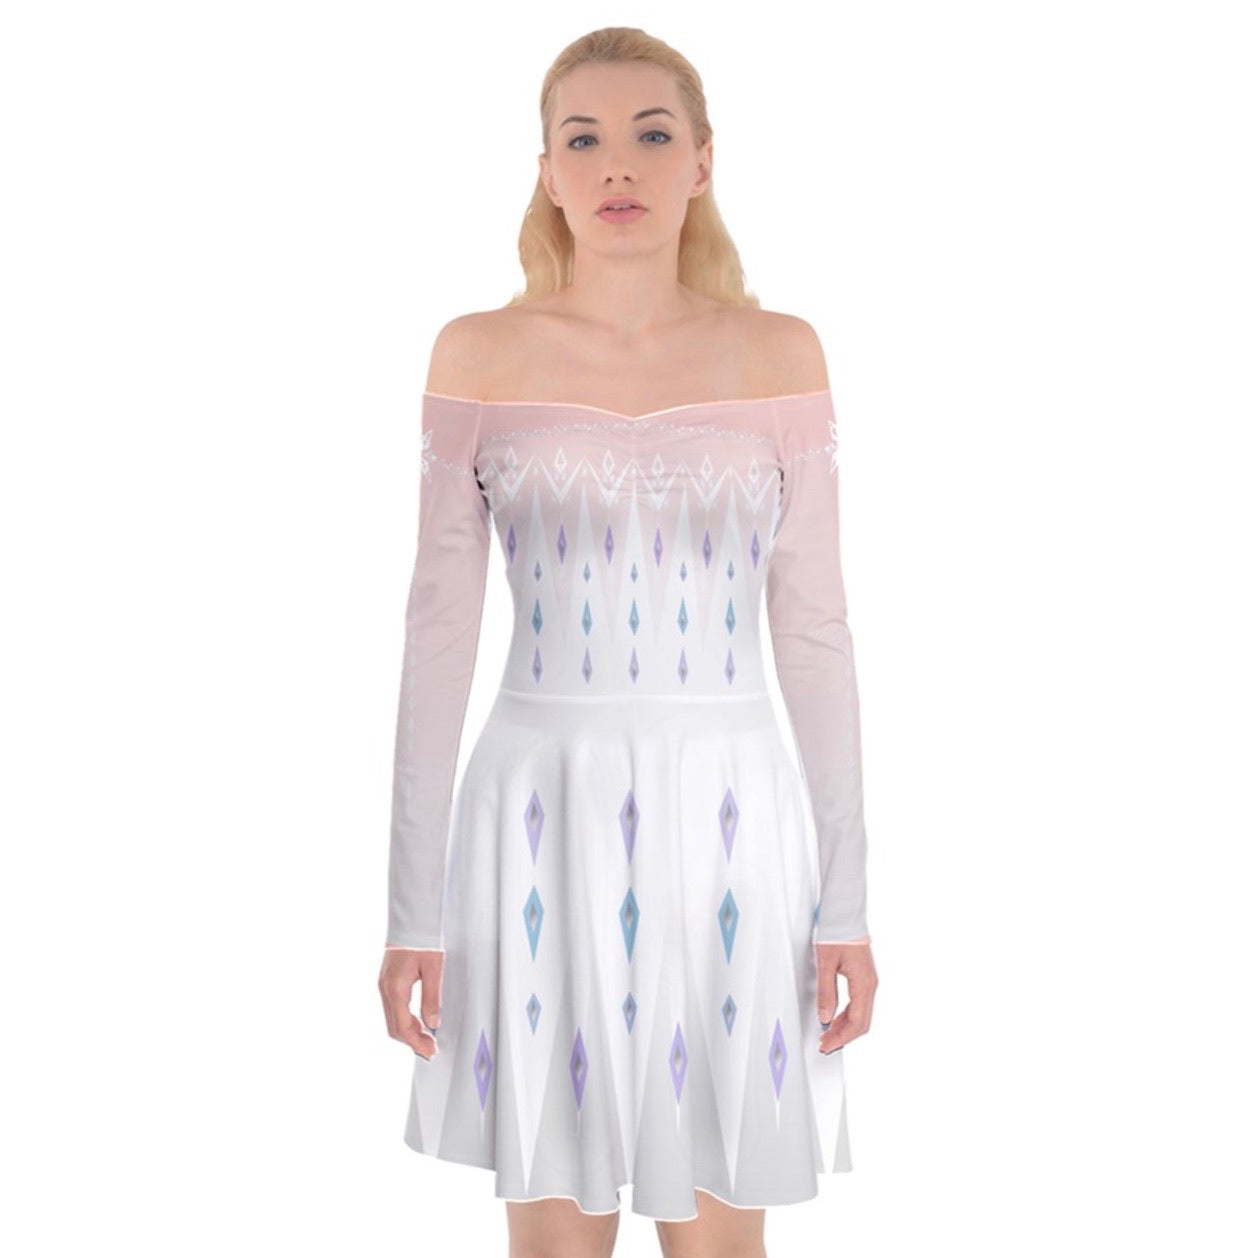 Frozen Elsa White Dress